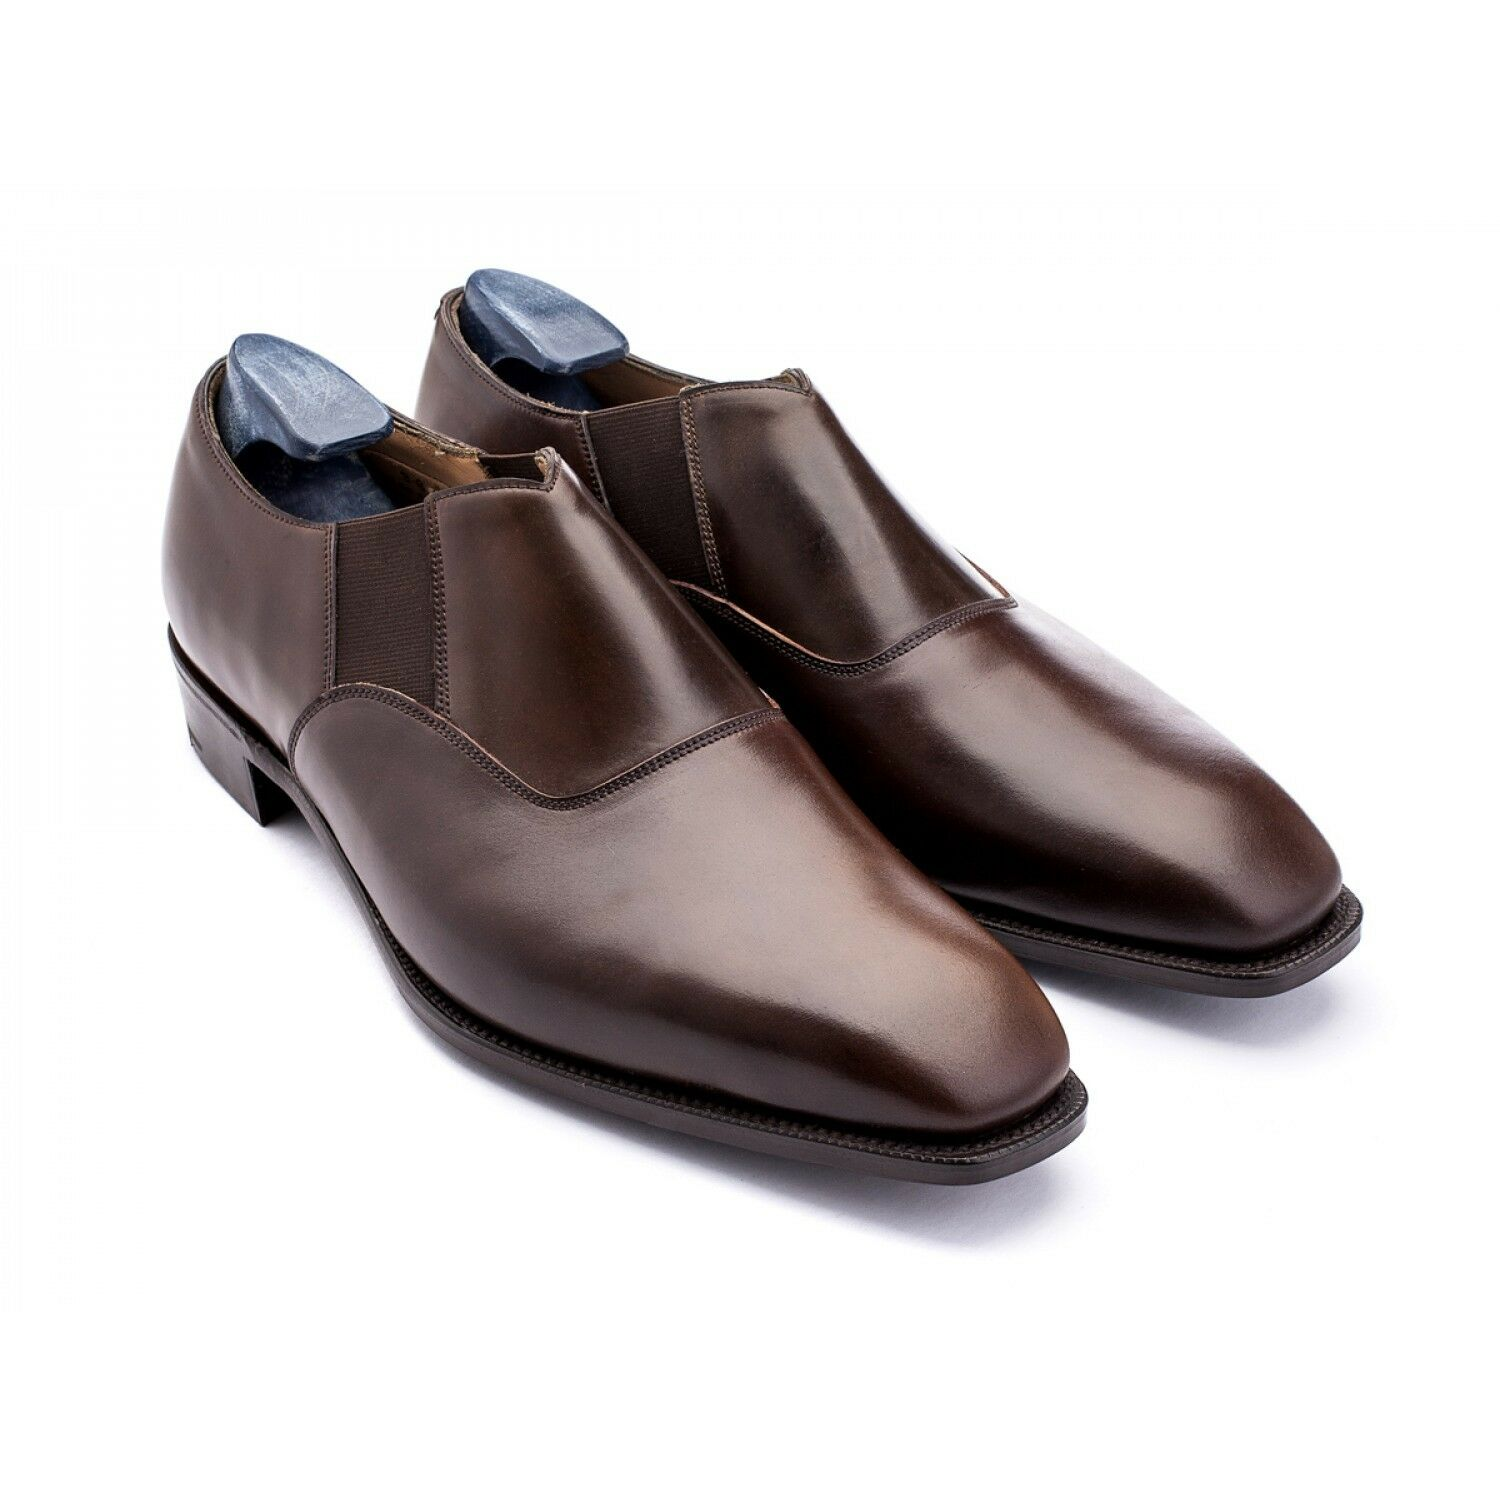 G.J. Cleverley Anthony Cleverley Brannagh Cognac Crup Cordovan